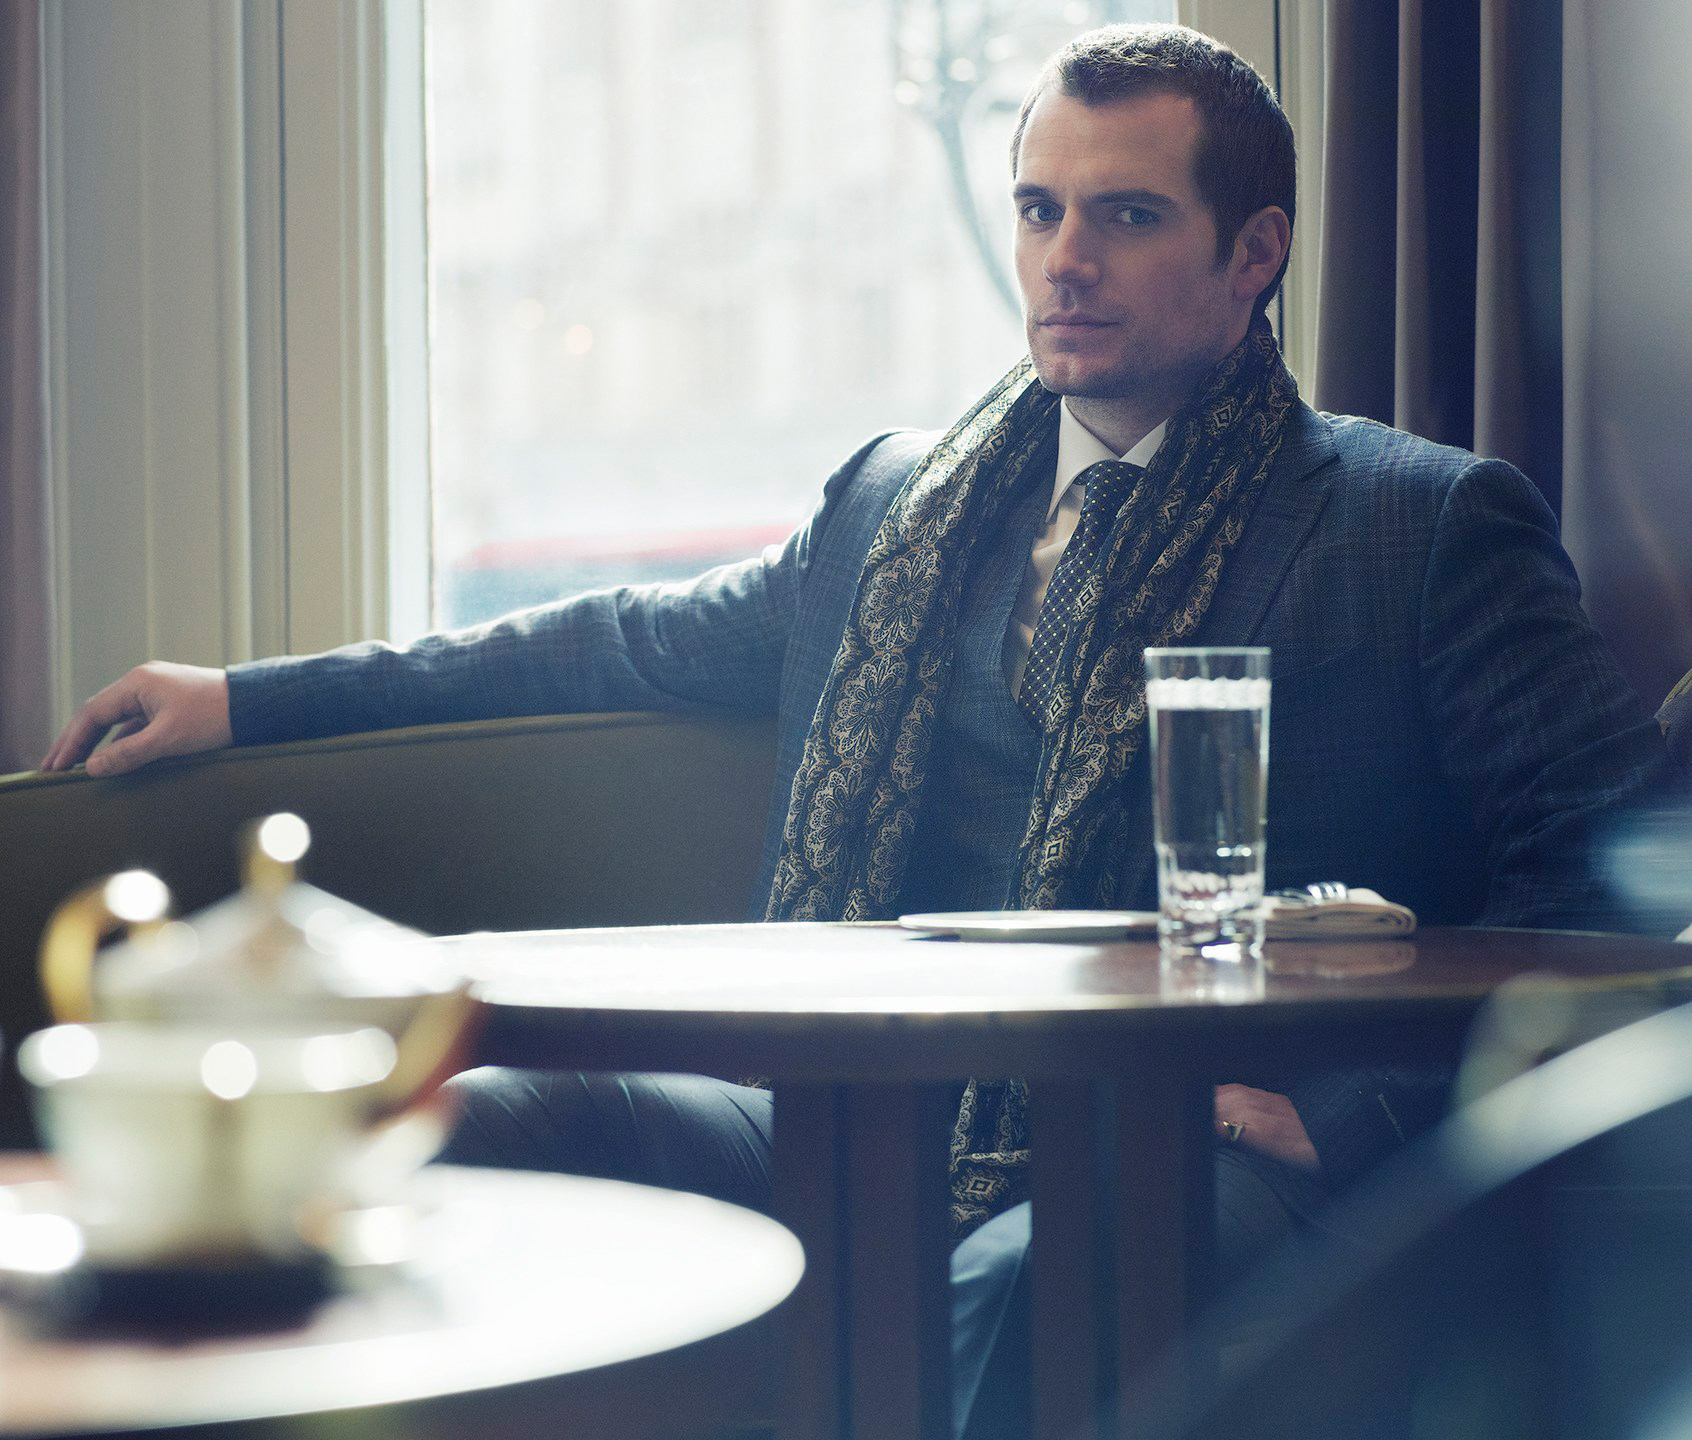 Henry Cavill photo 136 of 164 pics, wallpaper - photo #840585 - ThePlace2